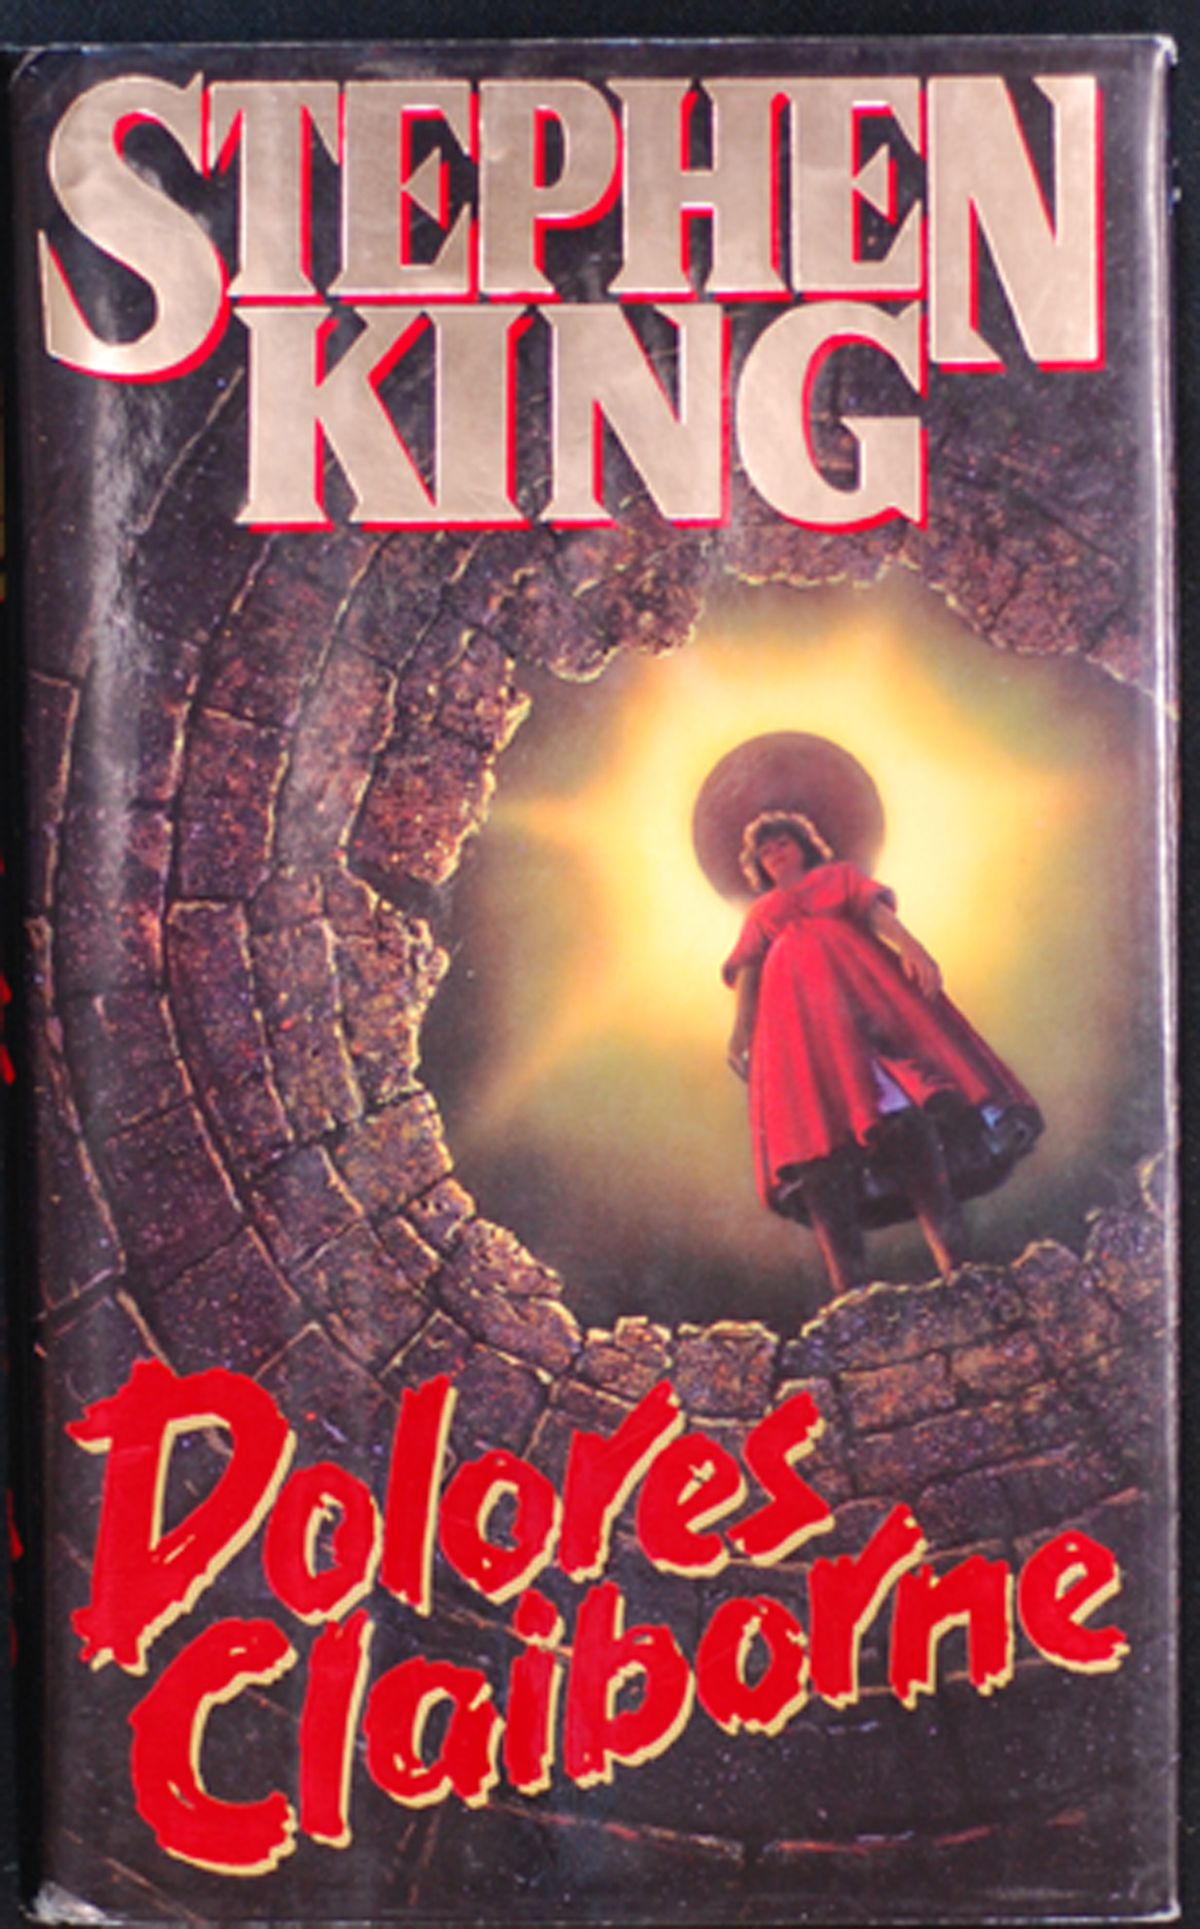 Dolores Claiborne By Stephen King Picked This One Up And Could Not Put It Down This Book Is Unique I Stephen King Books All Stephen King Books Stephen King